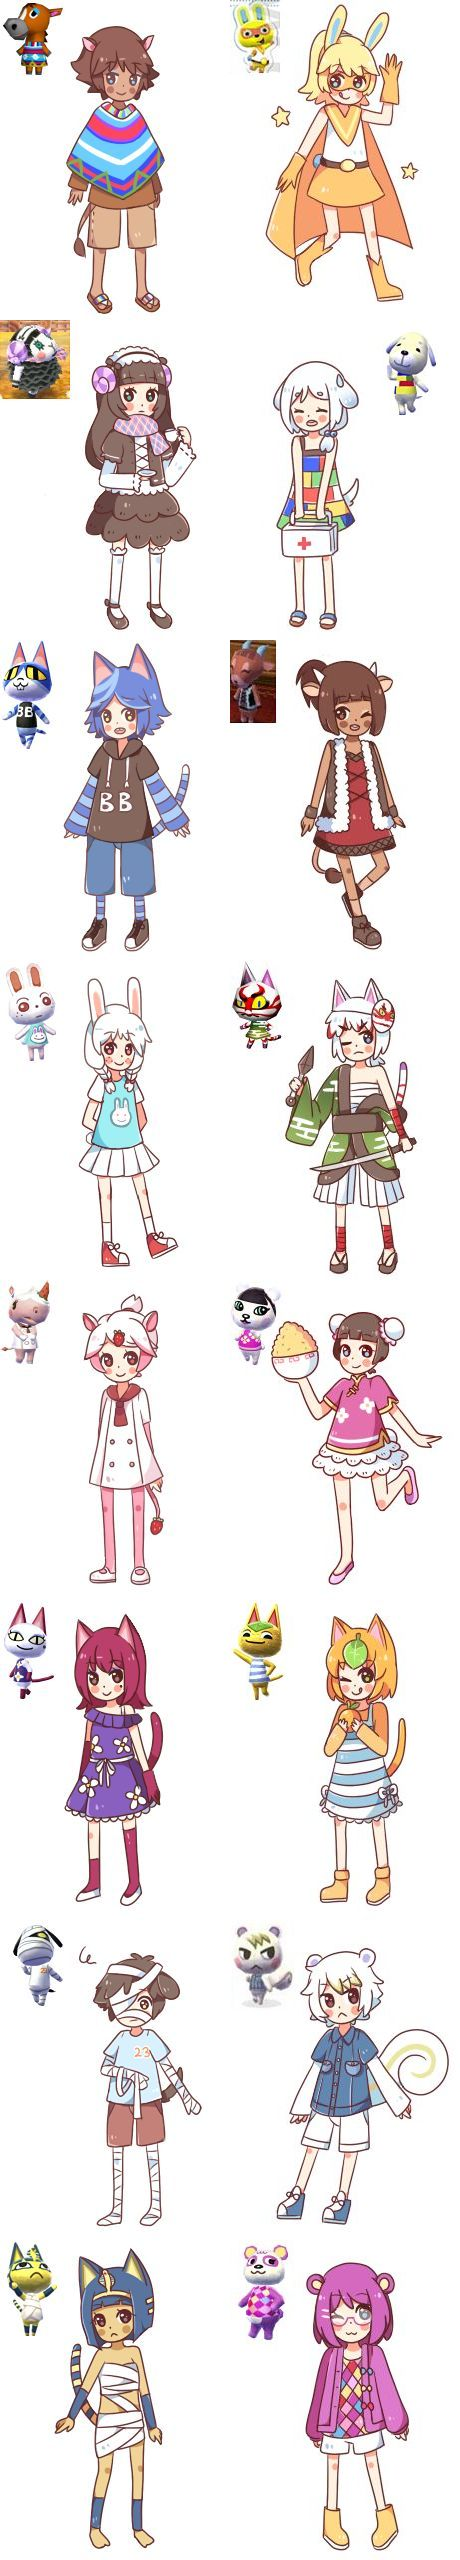 Anime Characters Animals : Animal crossing animals and anime characters on pinterest